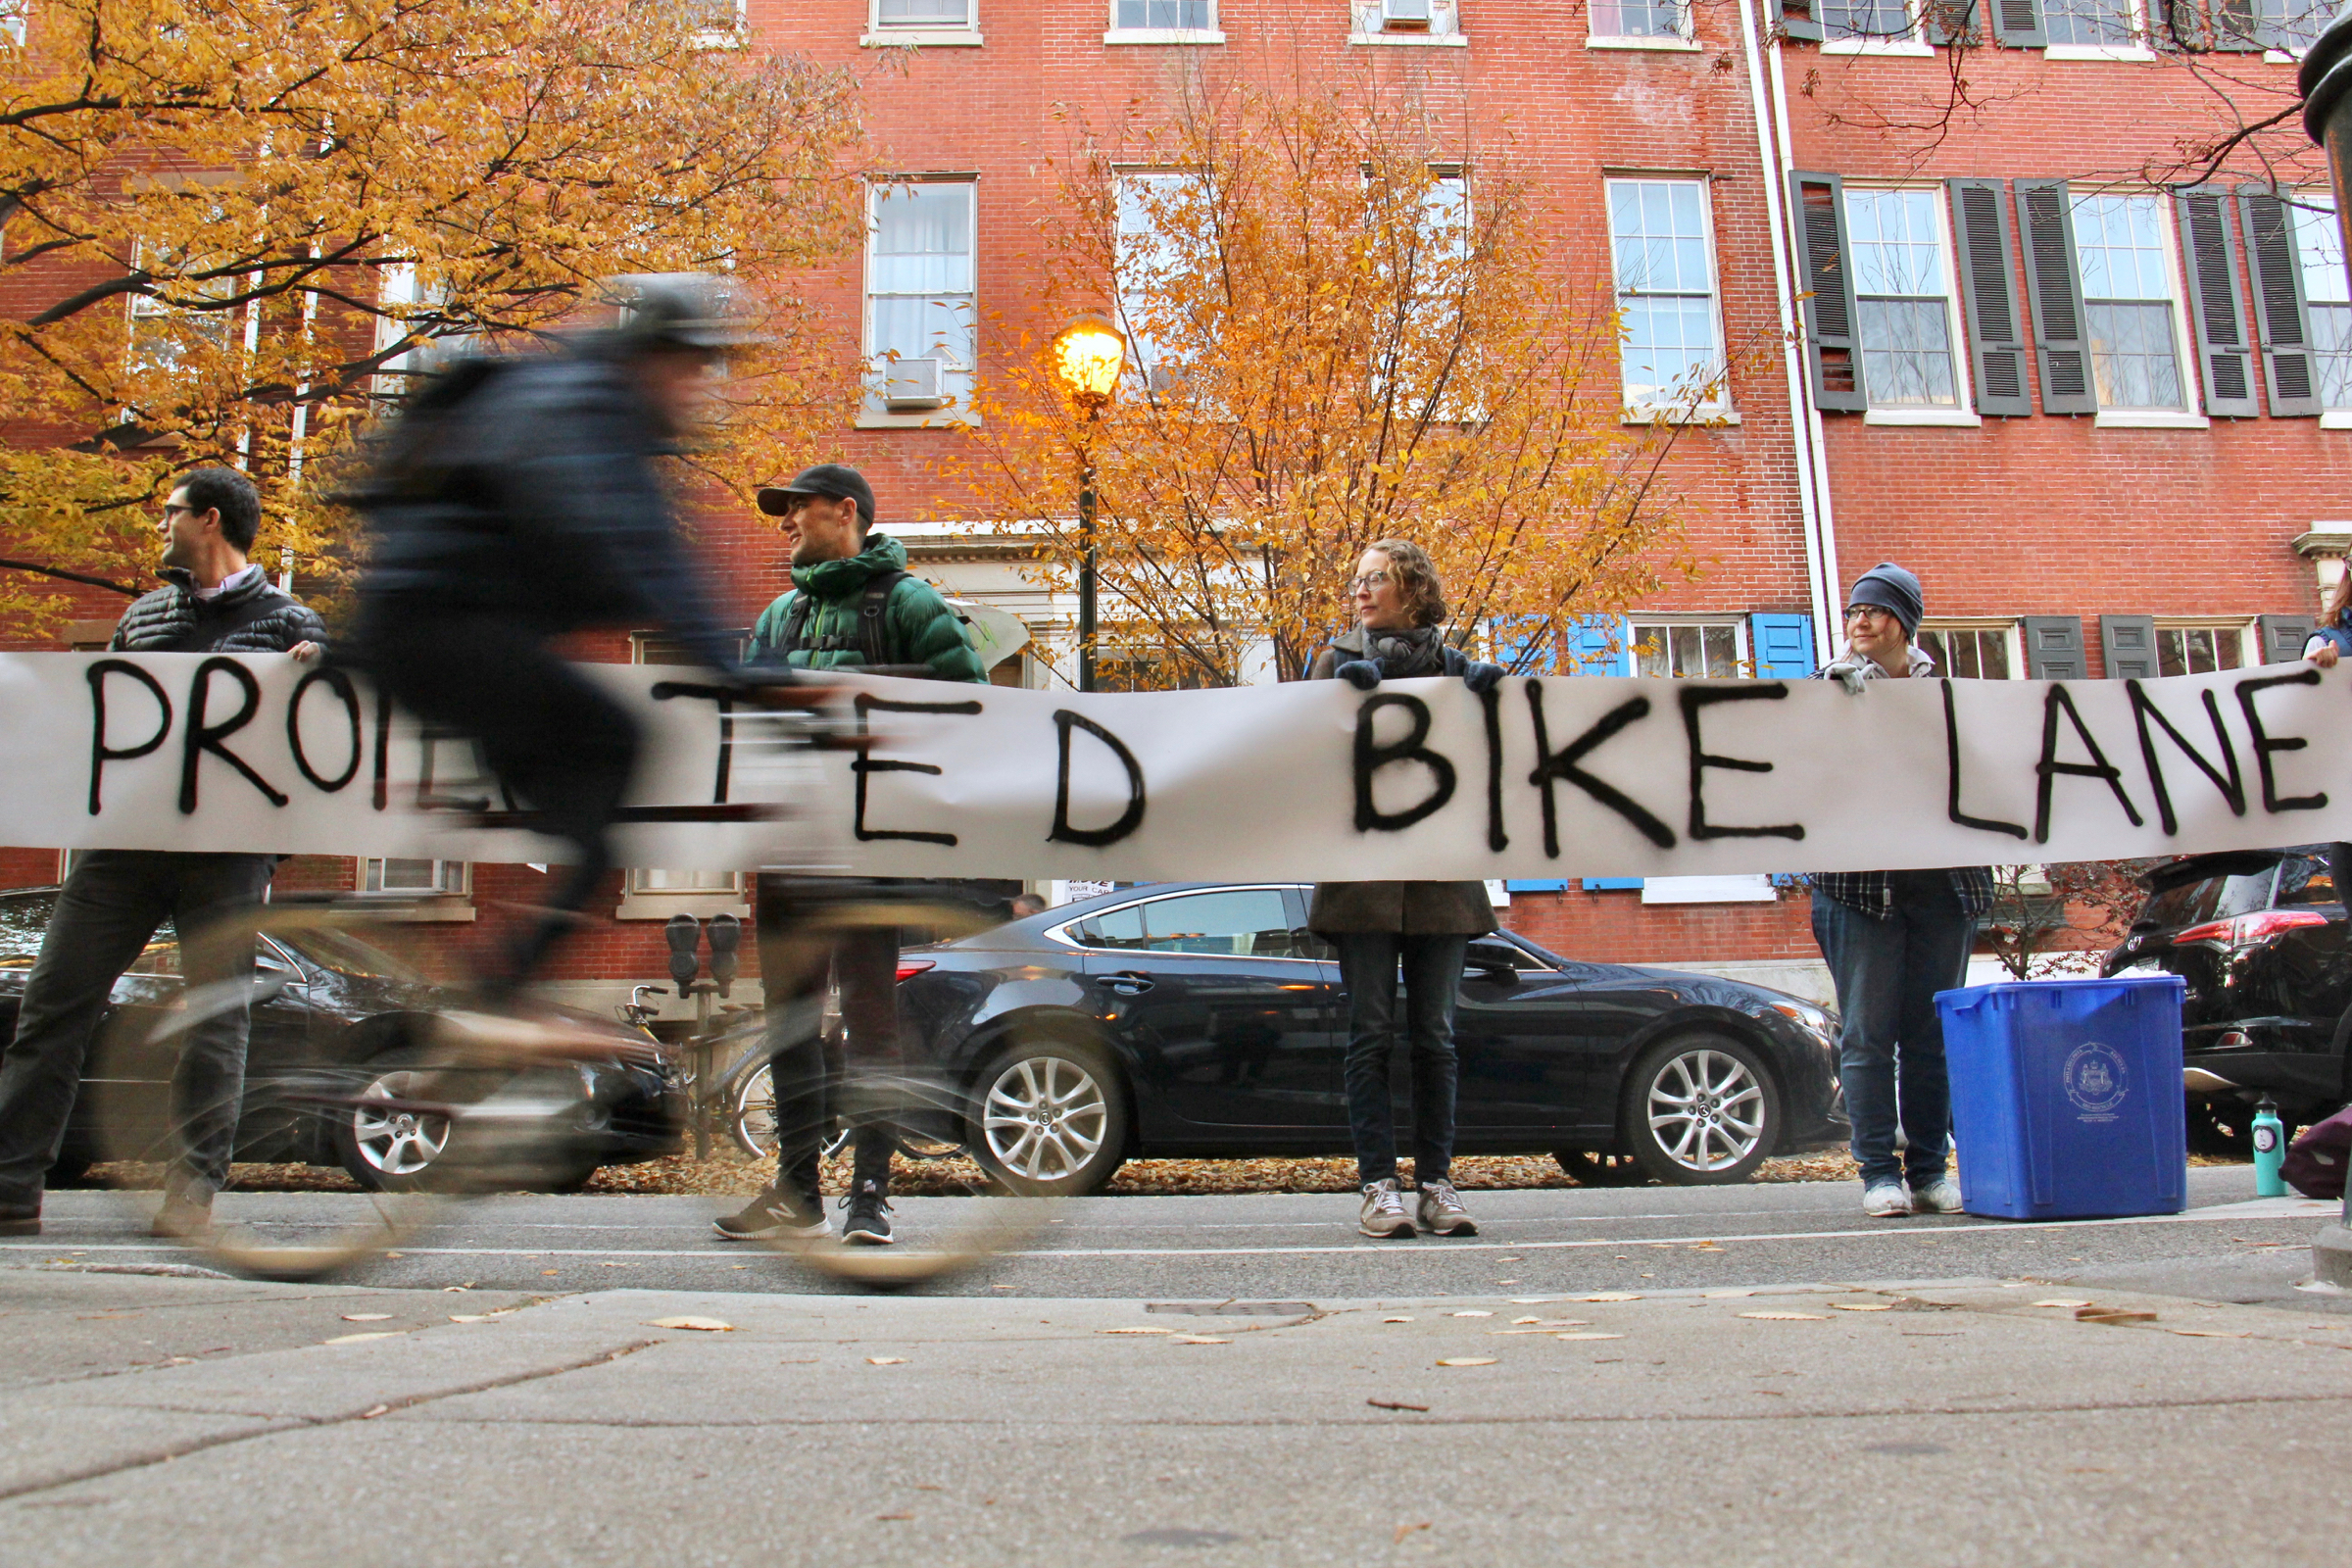 Bicyclists forming a human-protected bike lane hold up a banner calling for protected bike lanes near site of a fatal crash the day prior